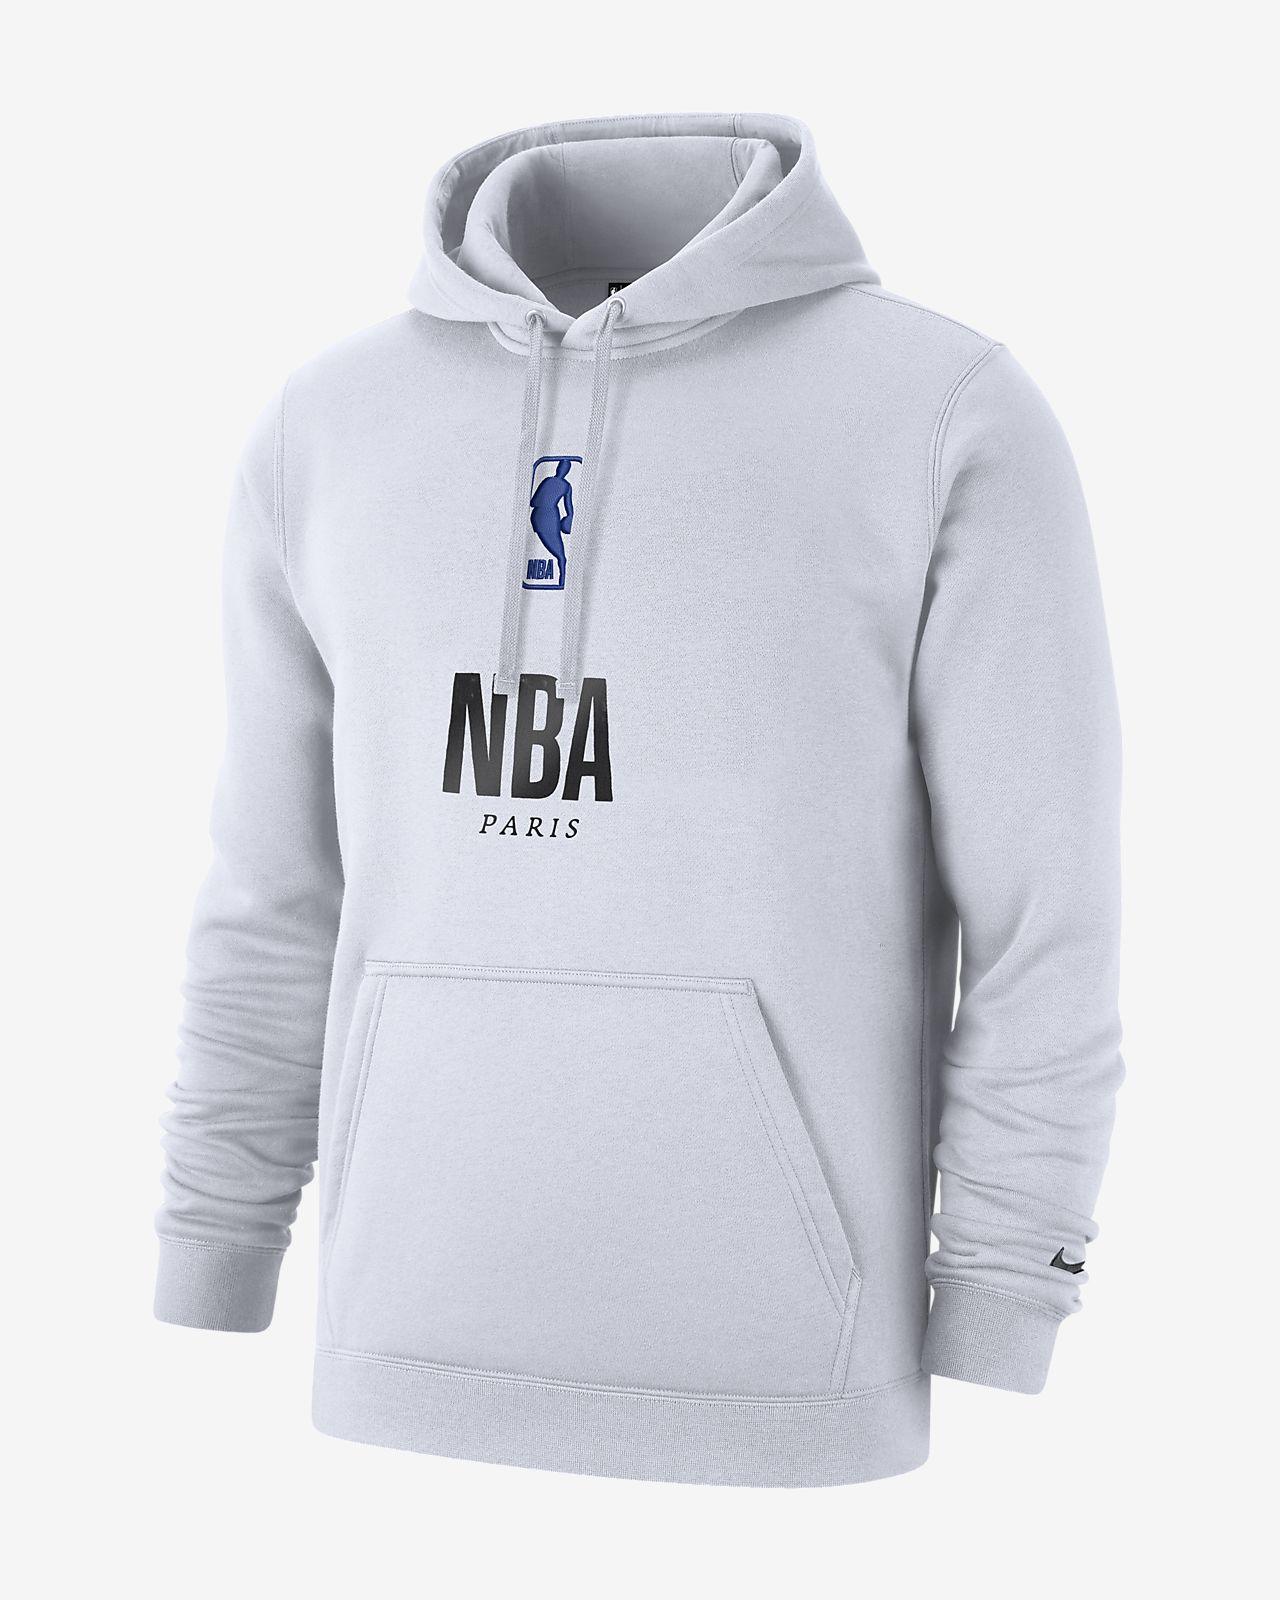 Nike Courtside 'Paris' Men's NBA Sweatshirt